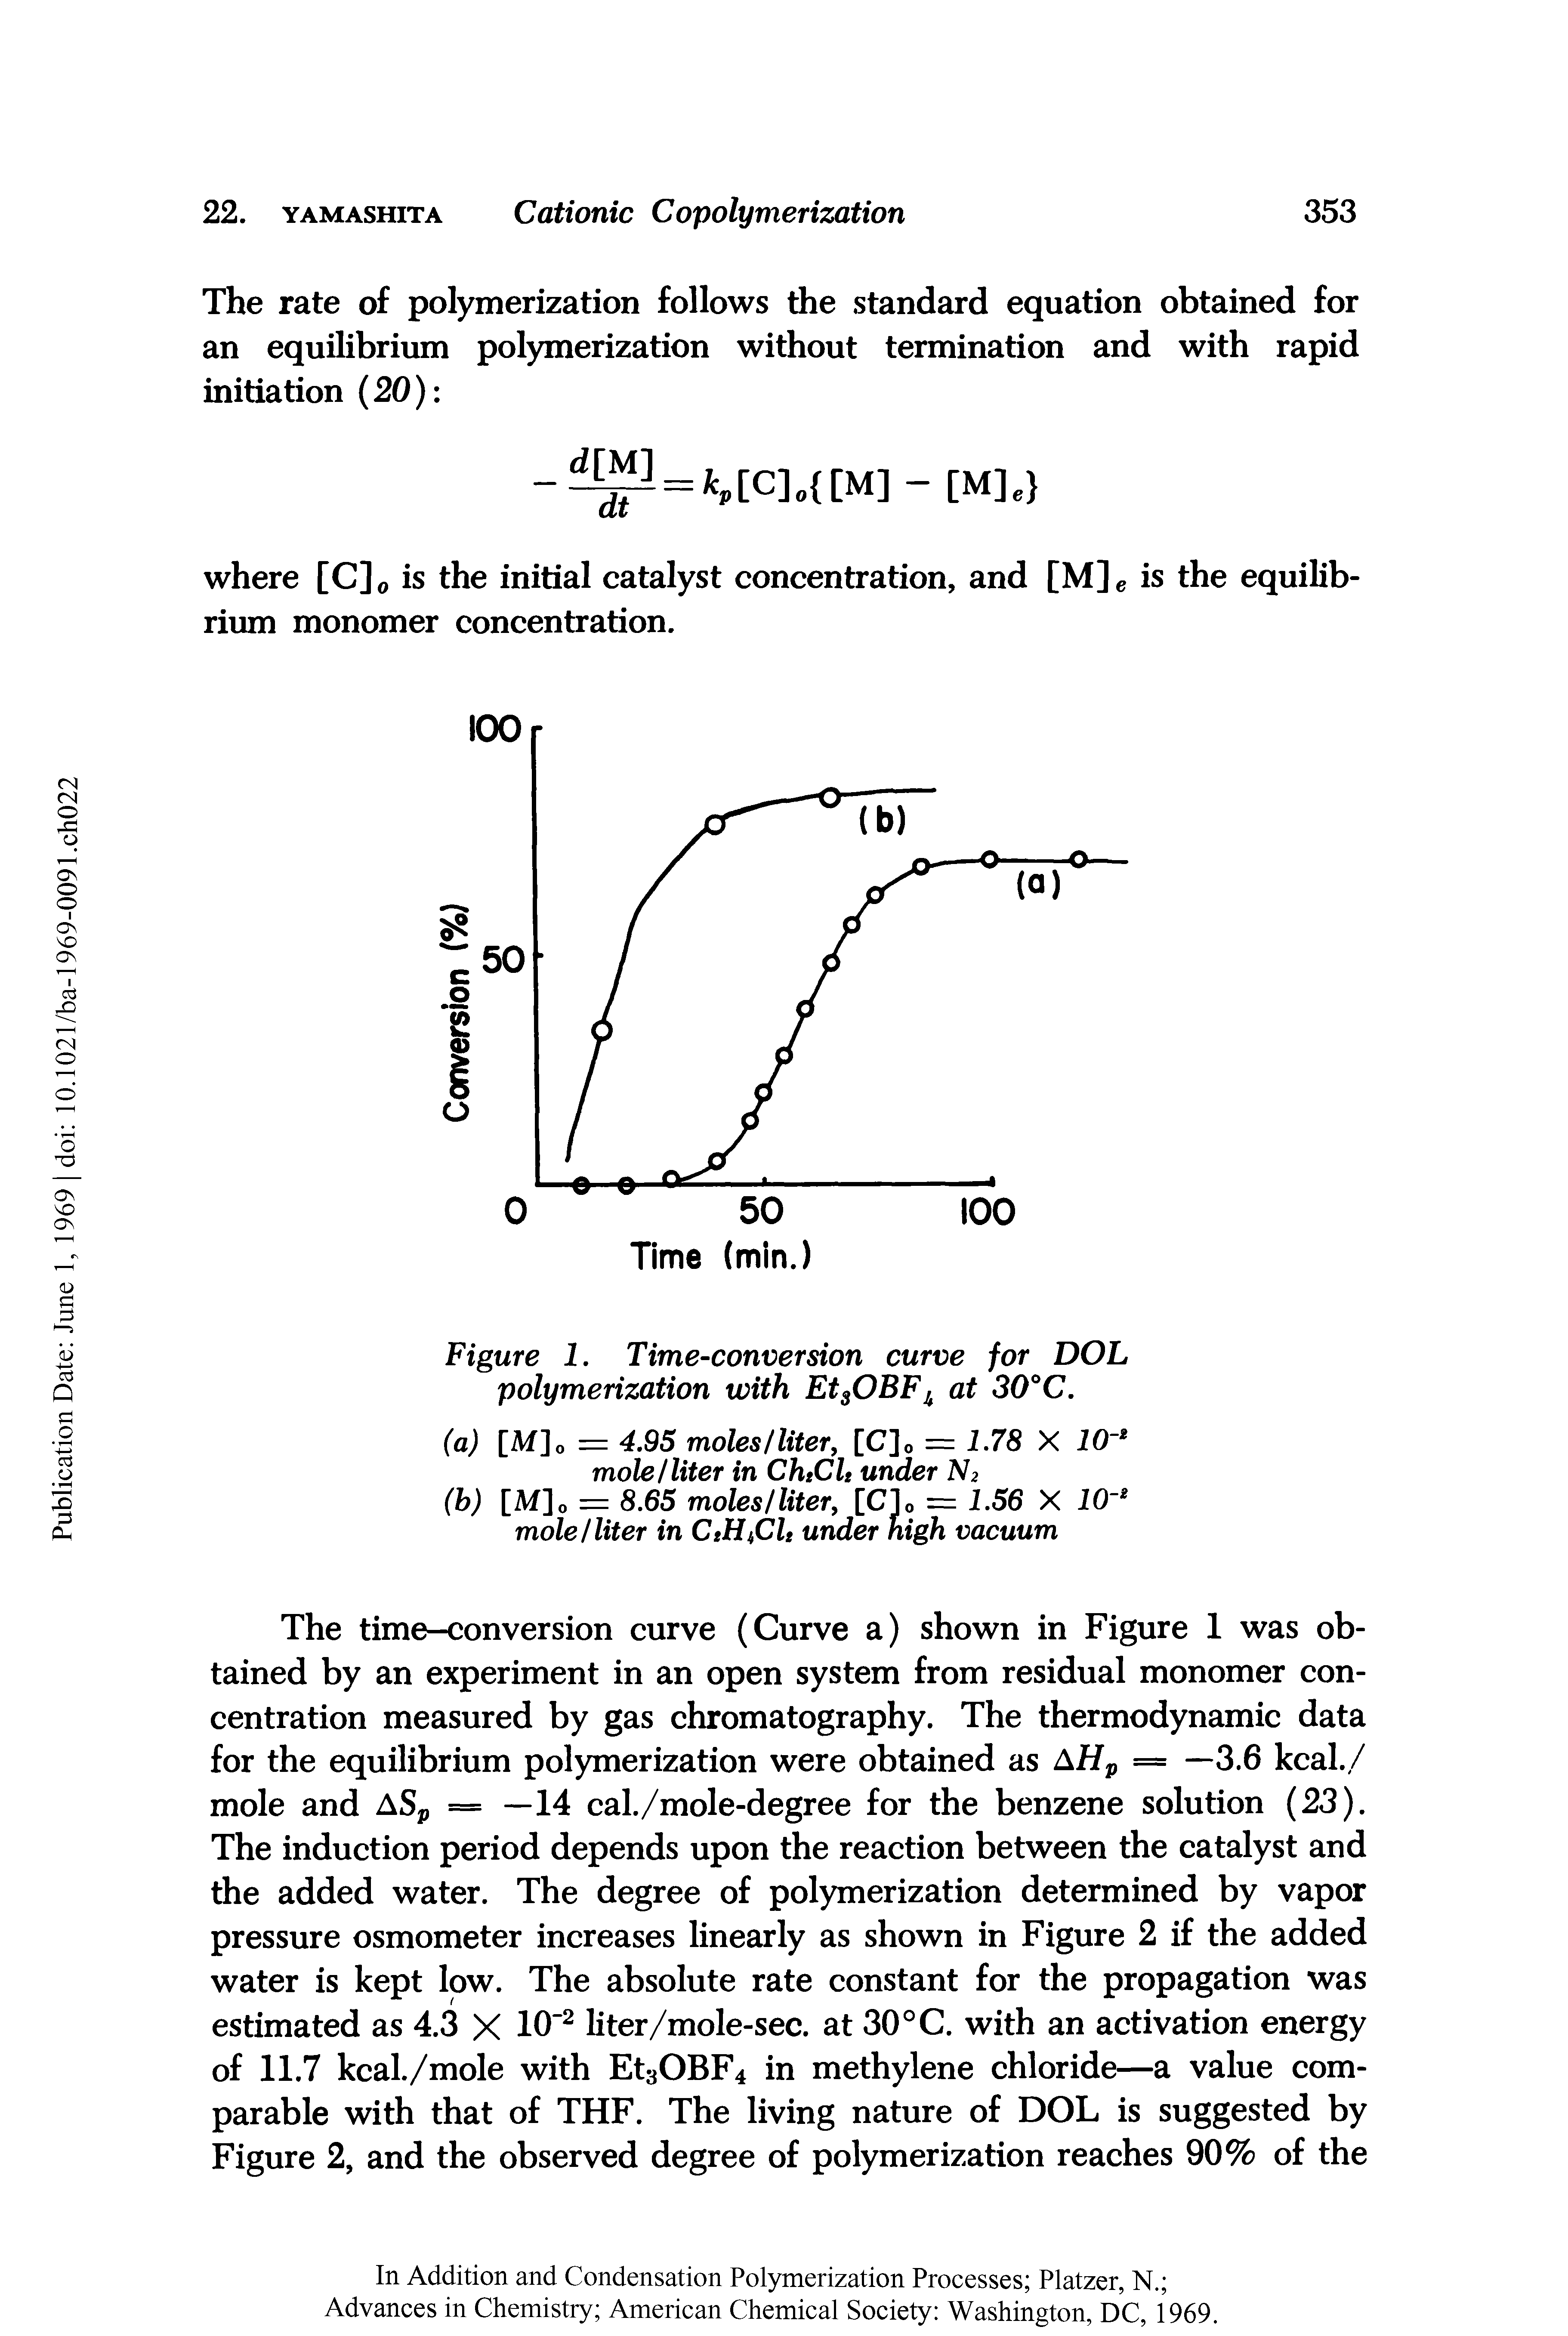 "Figure 1. Time-conversion curve for DOL <a href=""/info/polymerization_with_edc"">polymerization with</a> EtsOBFh at 30°C."